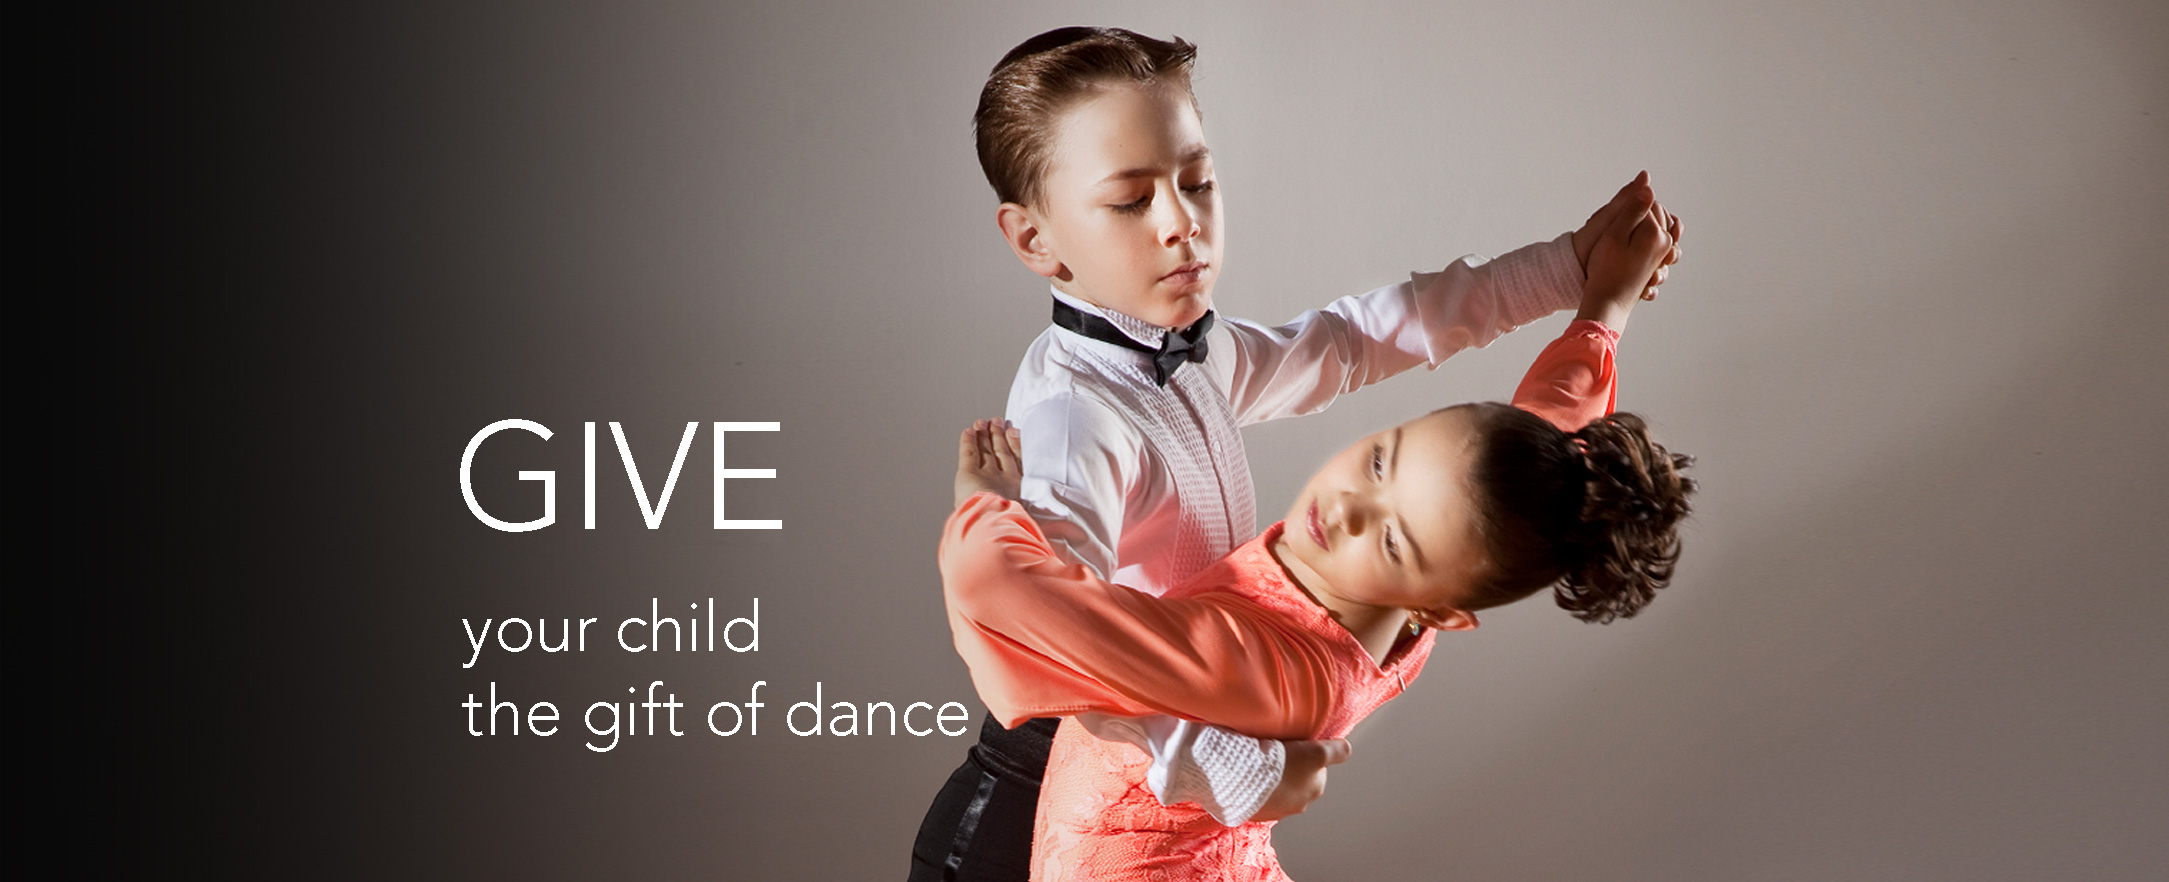 Give your child the gift of dance.